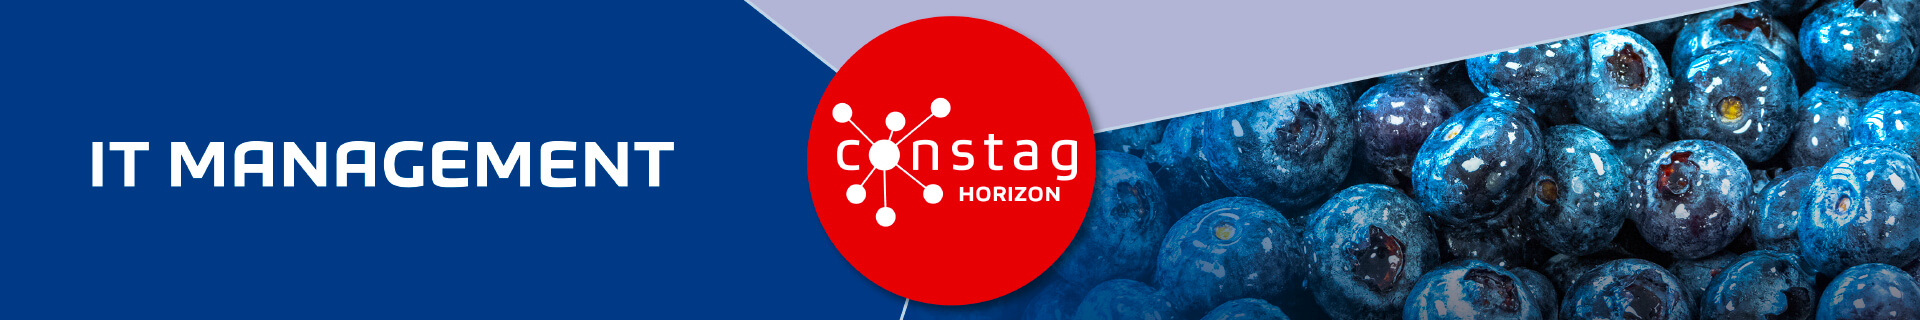 Constag Produkte IT-Management HORIZON